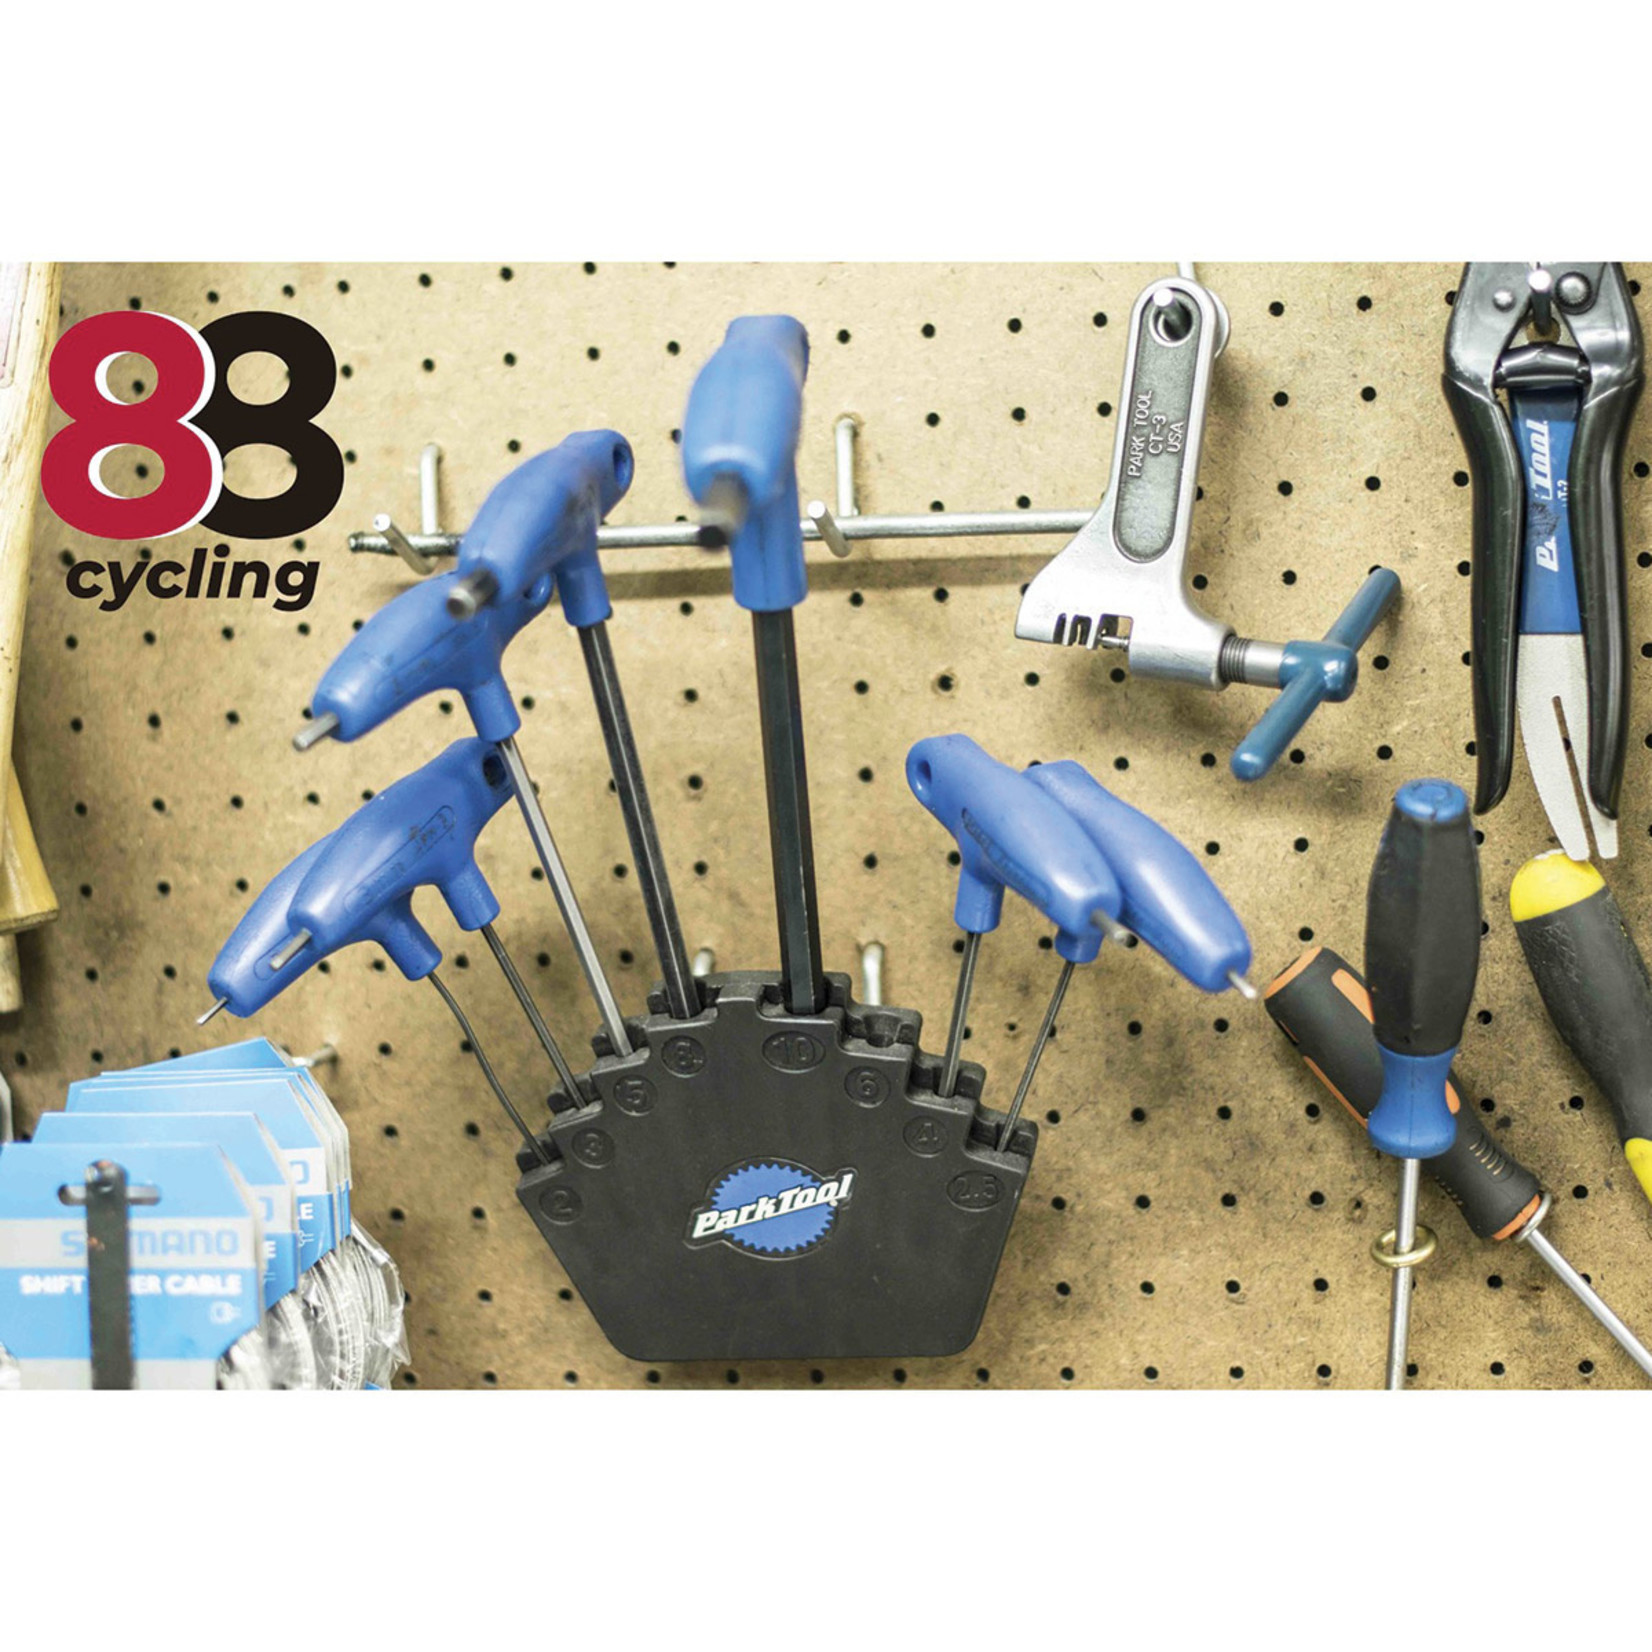 88 Cycling ELITE TUNE UP